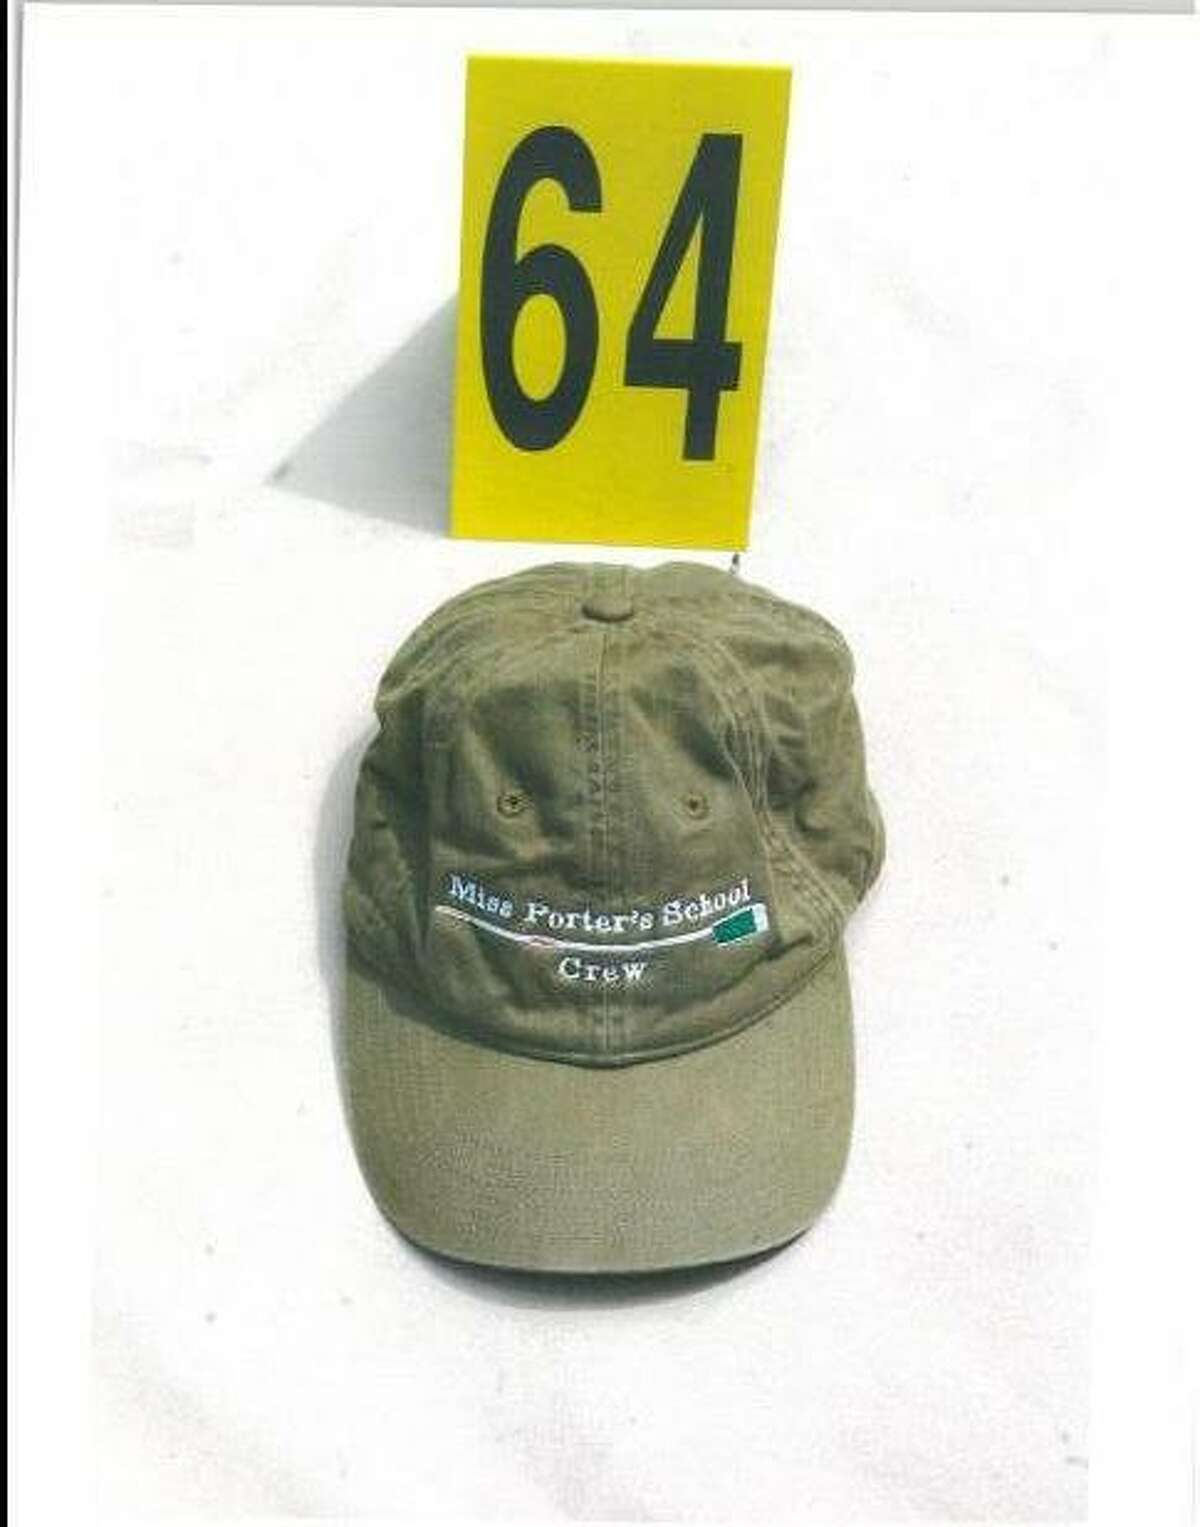 This is a hat that belonged to Hayley Petit, 17, who attended Miss Porter's School and was a member of the crew team. Suspect Steven J. Hayes was wearing the hat when he was arrested, according to testimony in the Cheshire triple homicide trial. (Evidence photo from state Judicial Branch)